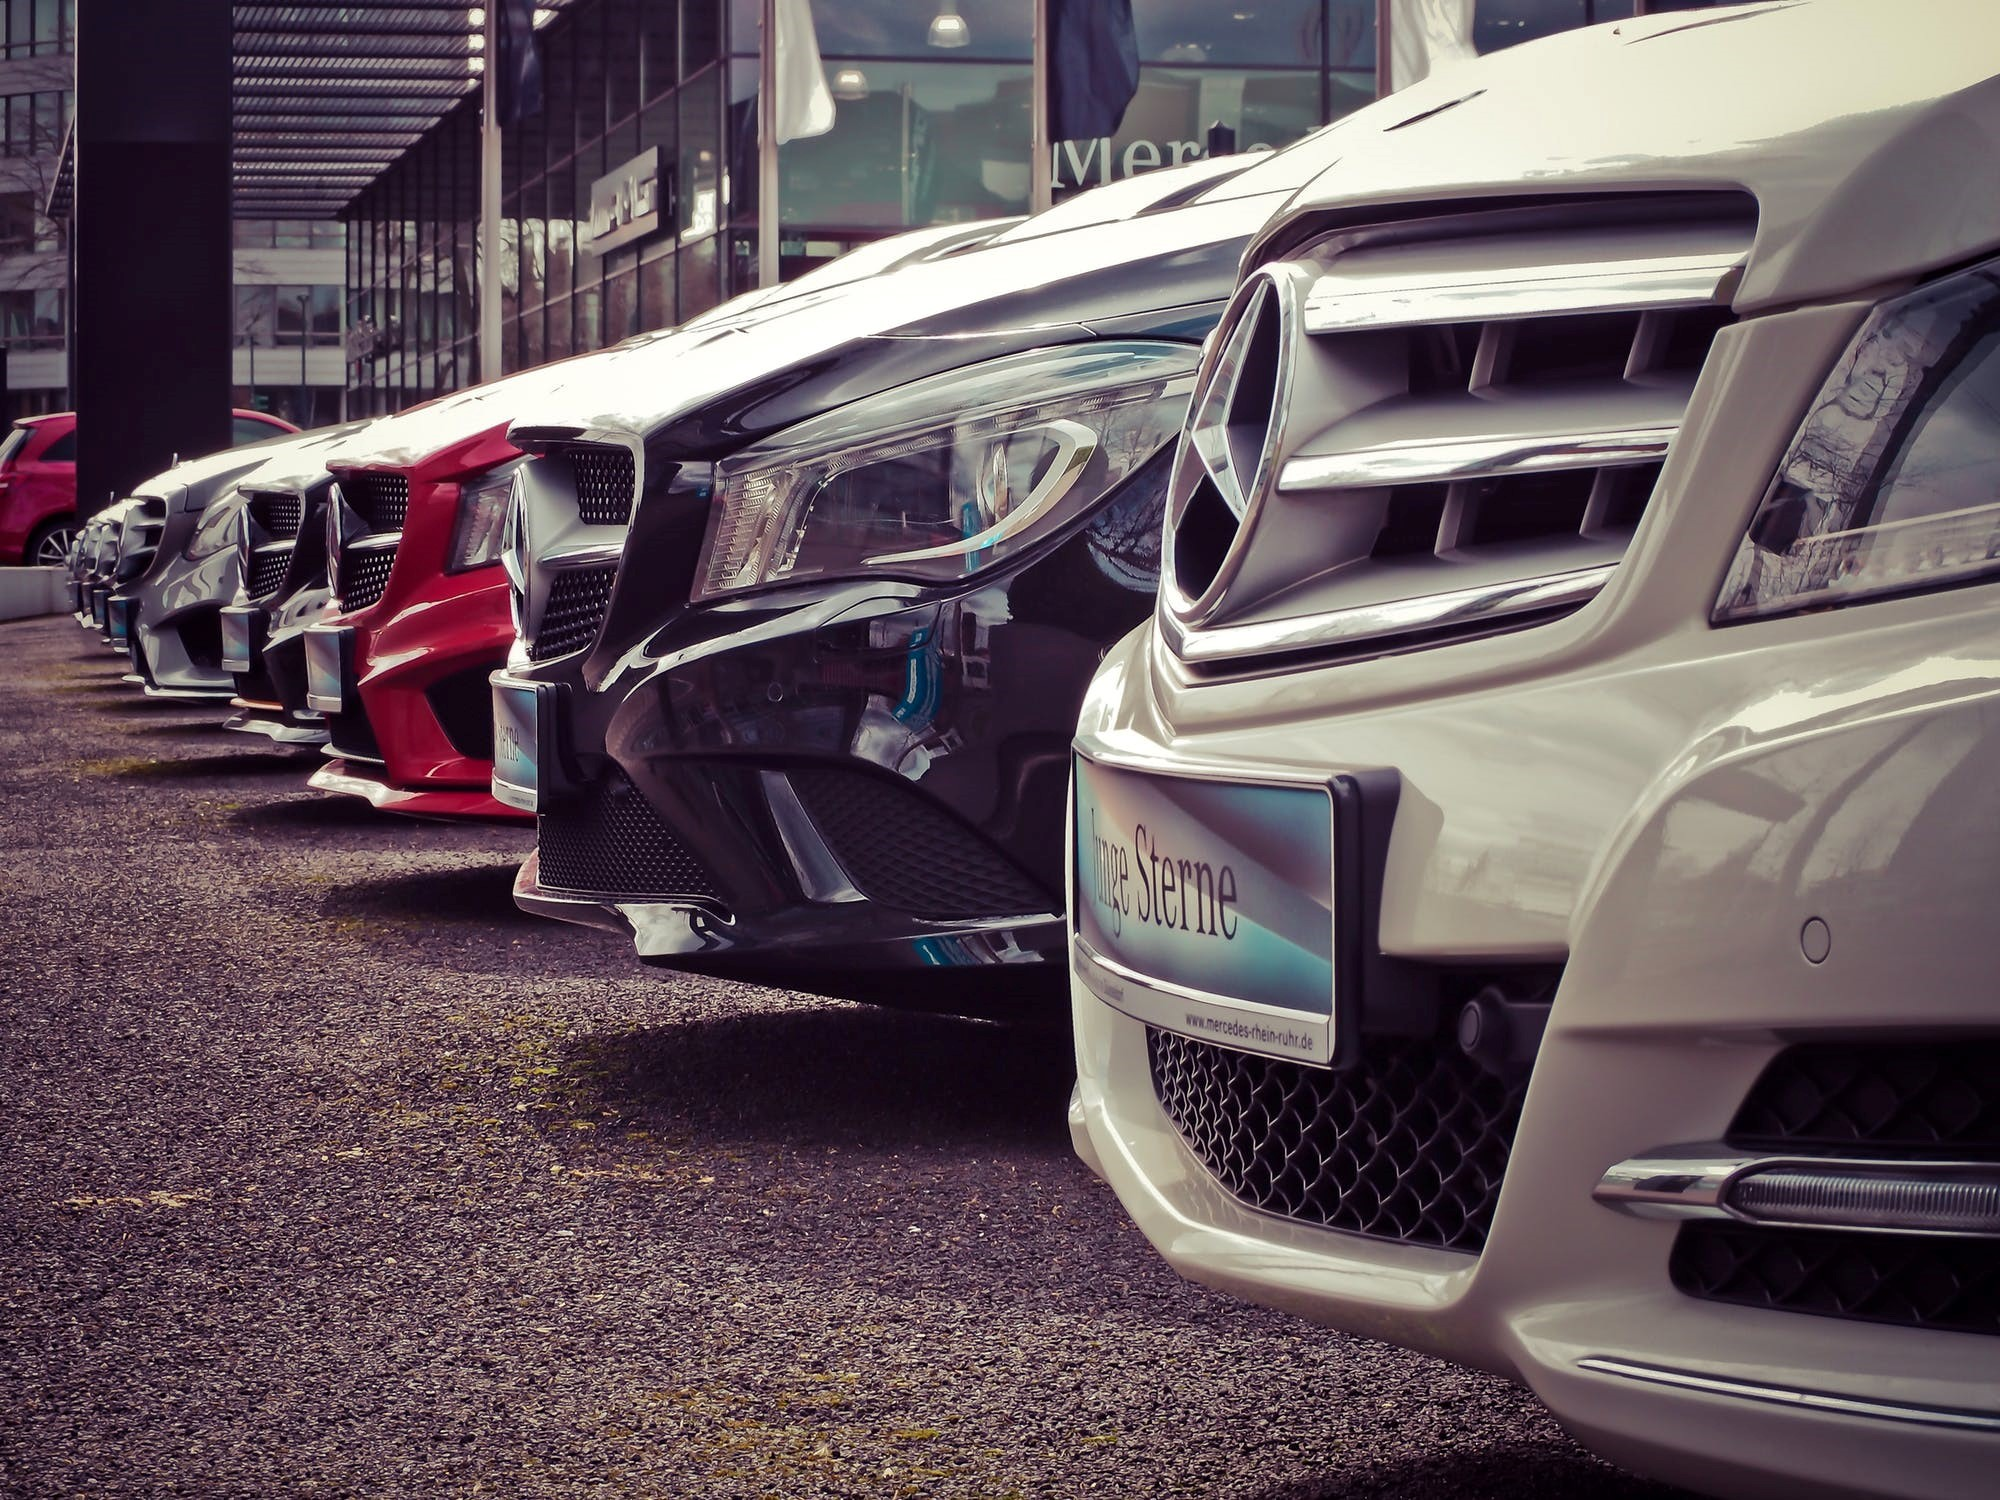 Private Car Insurance Vs Motor Trade Insurance - What's The Difference